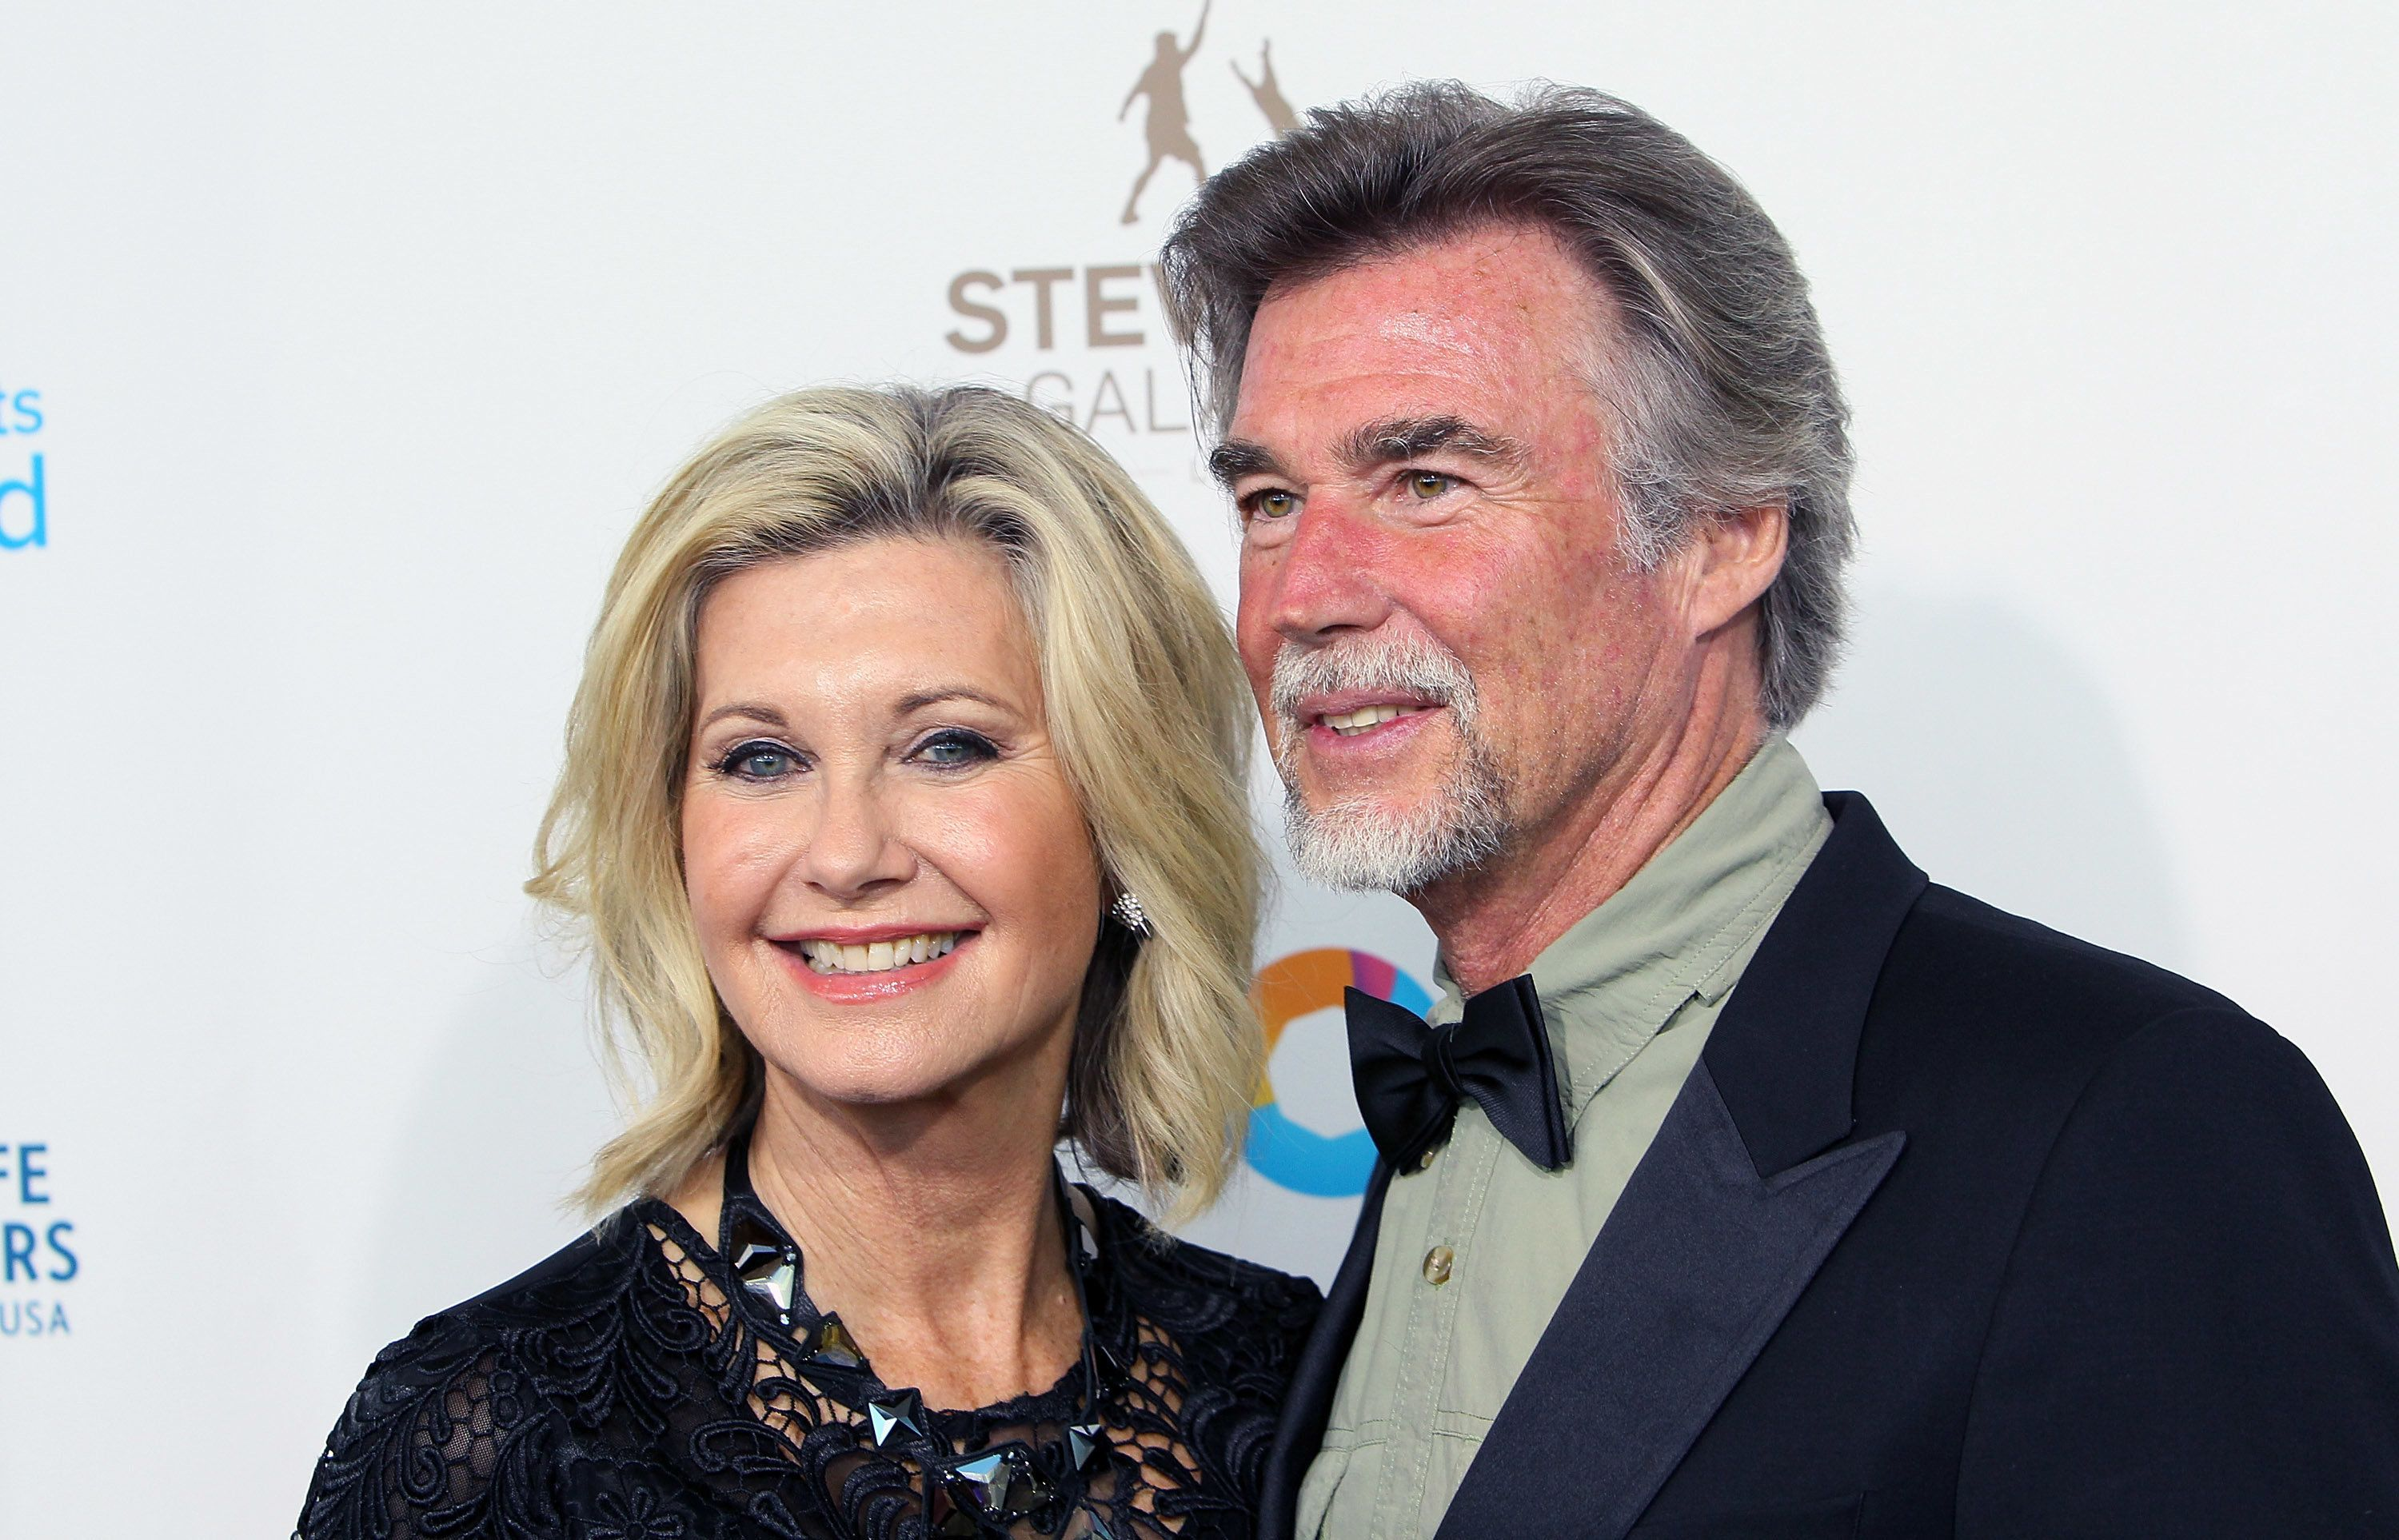 LOS ANGELES, CA - MAY 21:  Singer Olivia Newton-John (L) and husband John Easterling attend the Steve Irwin Gala Dinner at JW Marriott Los Angeles at L.A. LIVE on May 21, 2016 in Los Angeles, California.  (Photo by David Livingston/Getty Images)